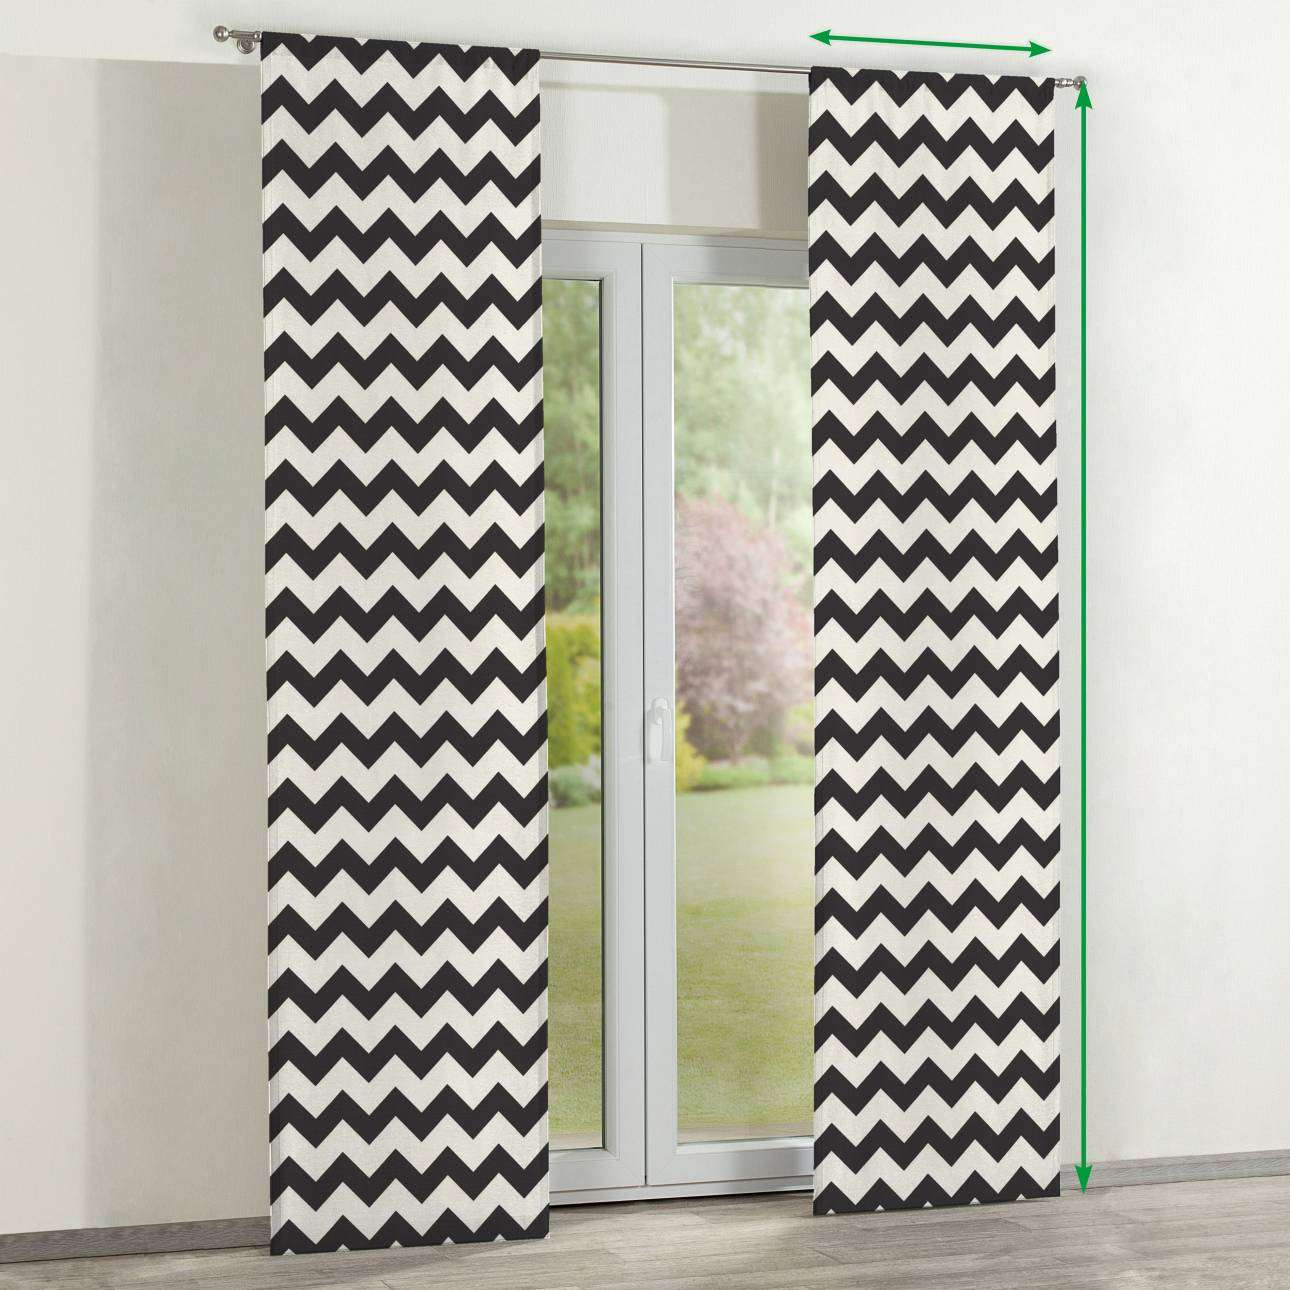 Slot panel curtains – Set of 2 in collection Comic Book & Geo Prints, fabric: 135-02